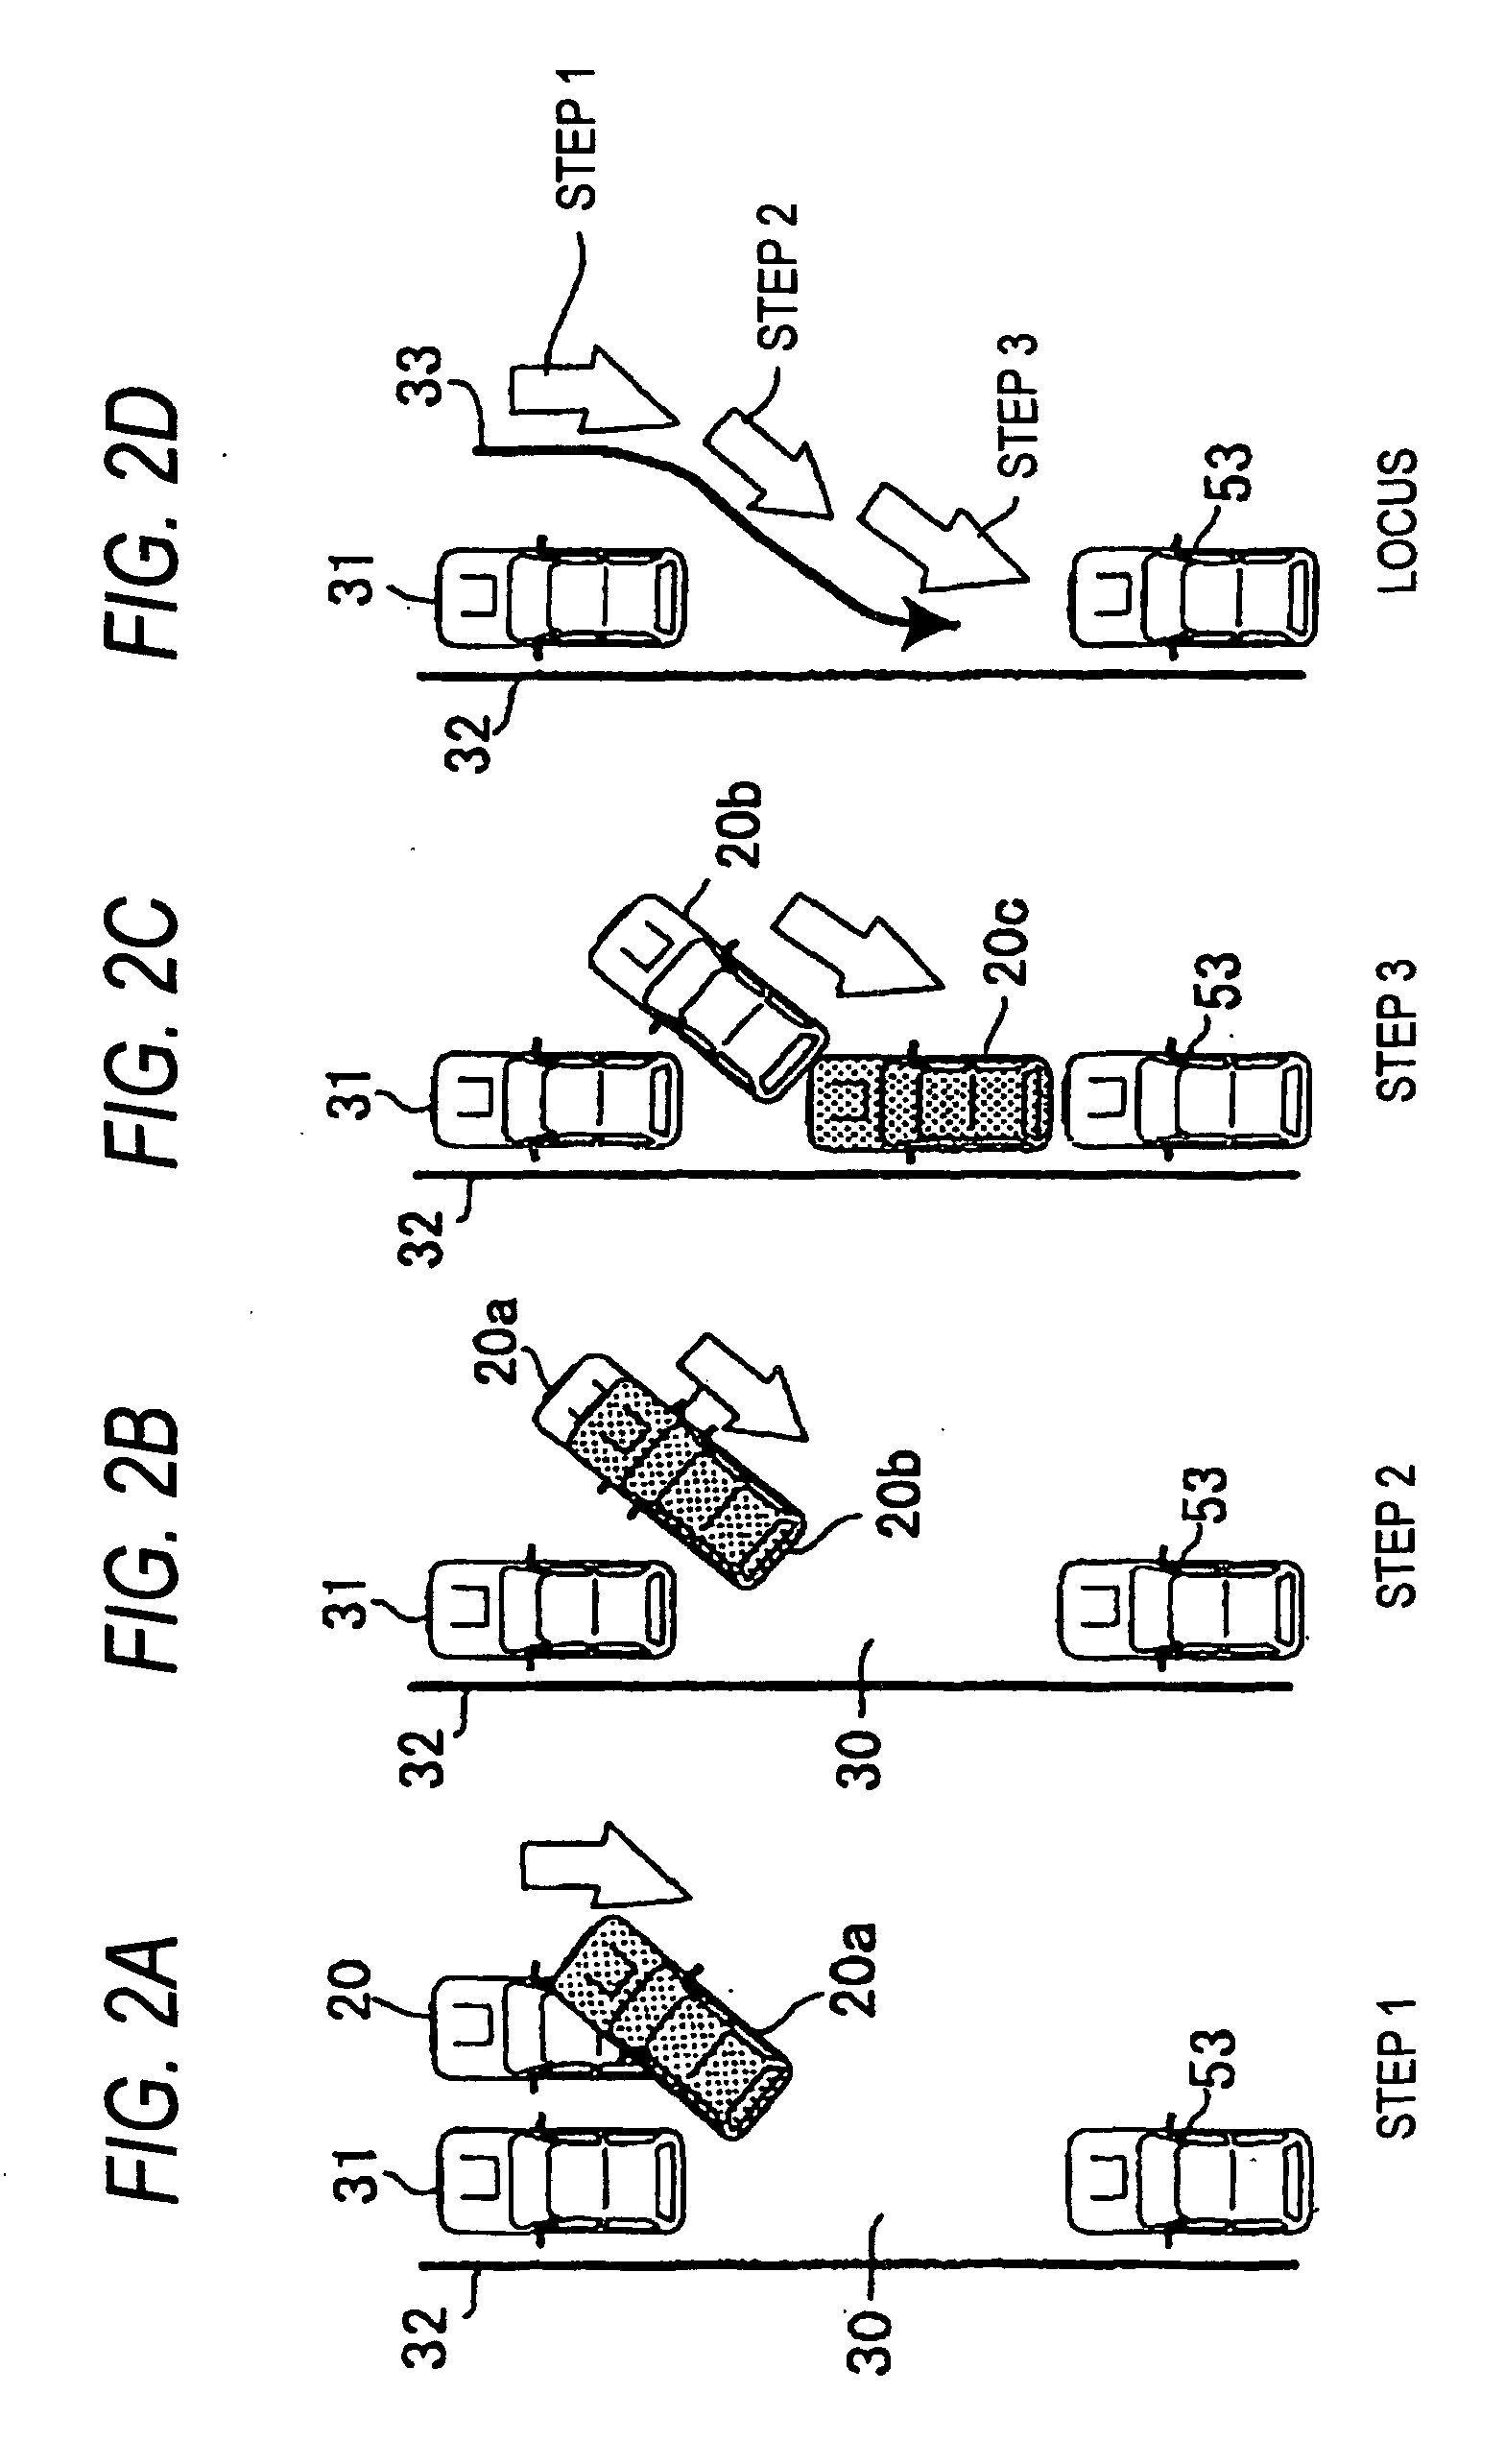 Patent Ep1493632a1 - Parking Operation Assisting System